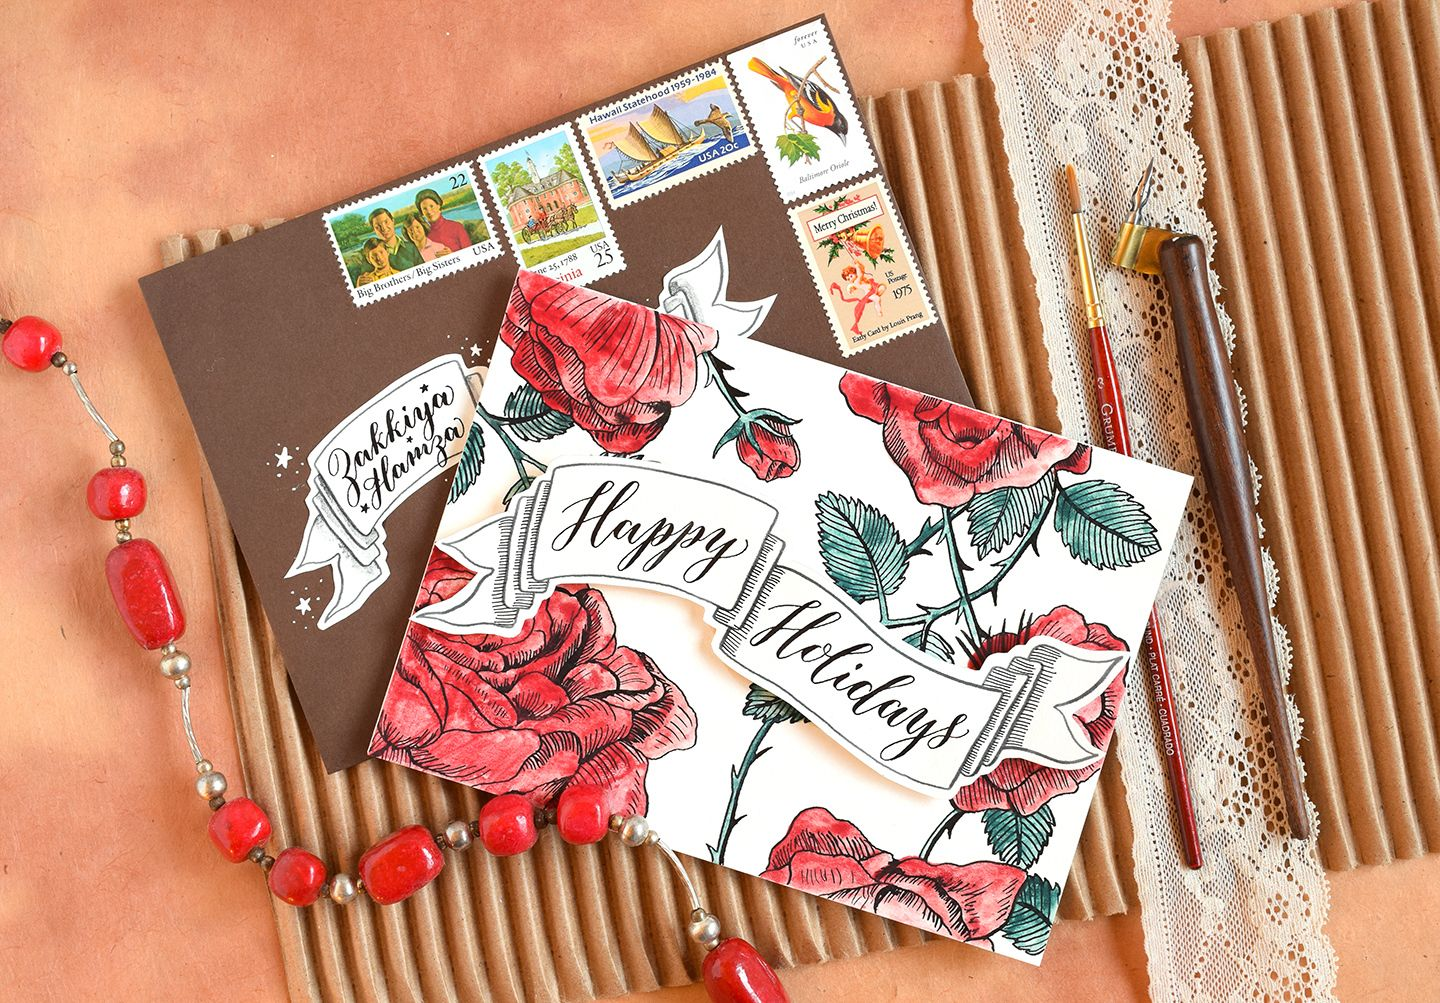 diy holiday card artistic envelope tutorial - Artistic Holiday Cards